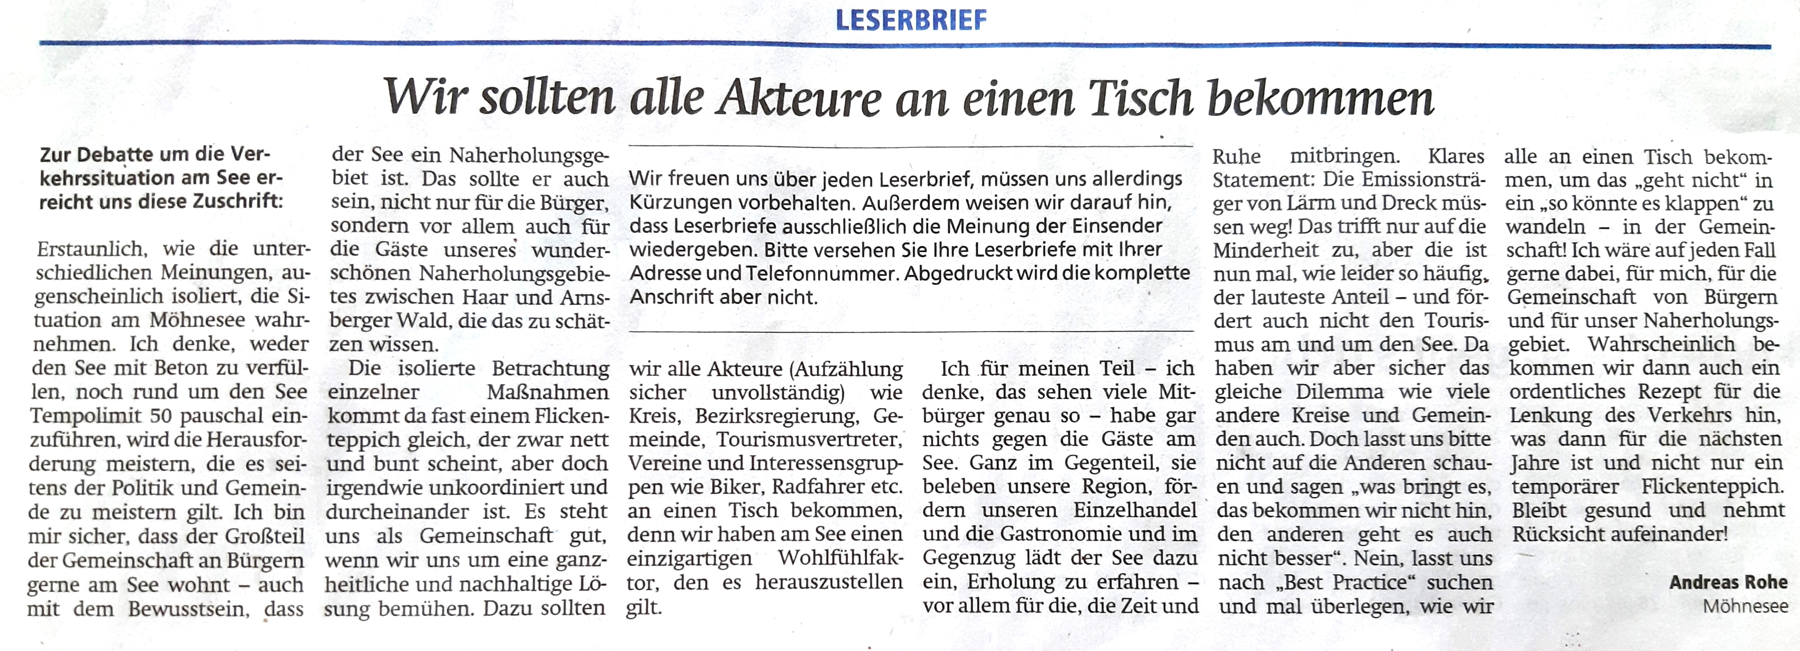 leserbrief_andreas_rohe.png